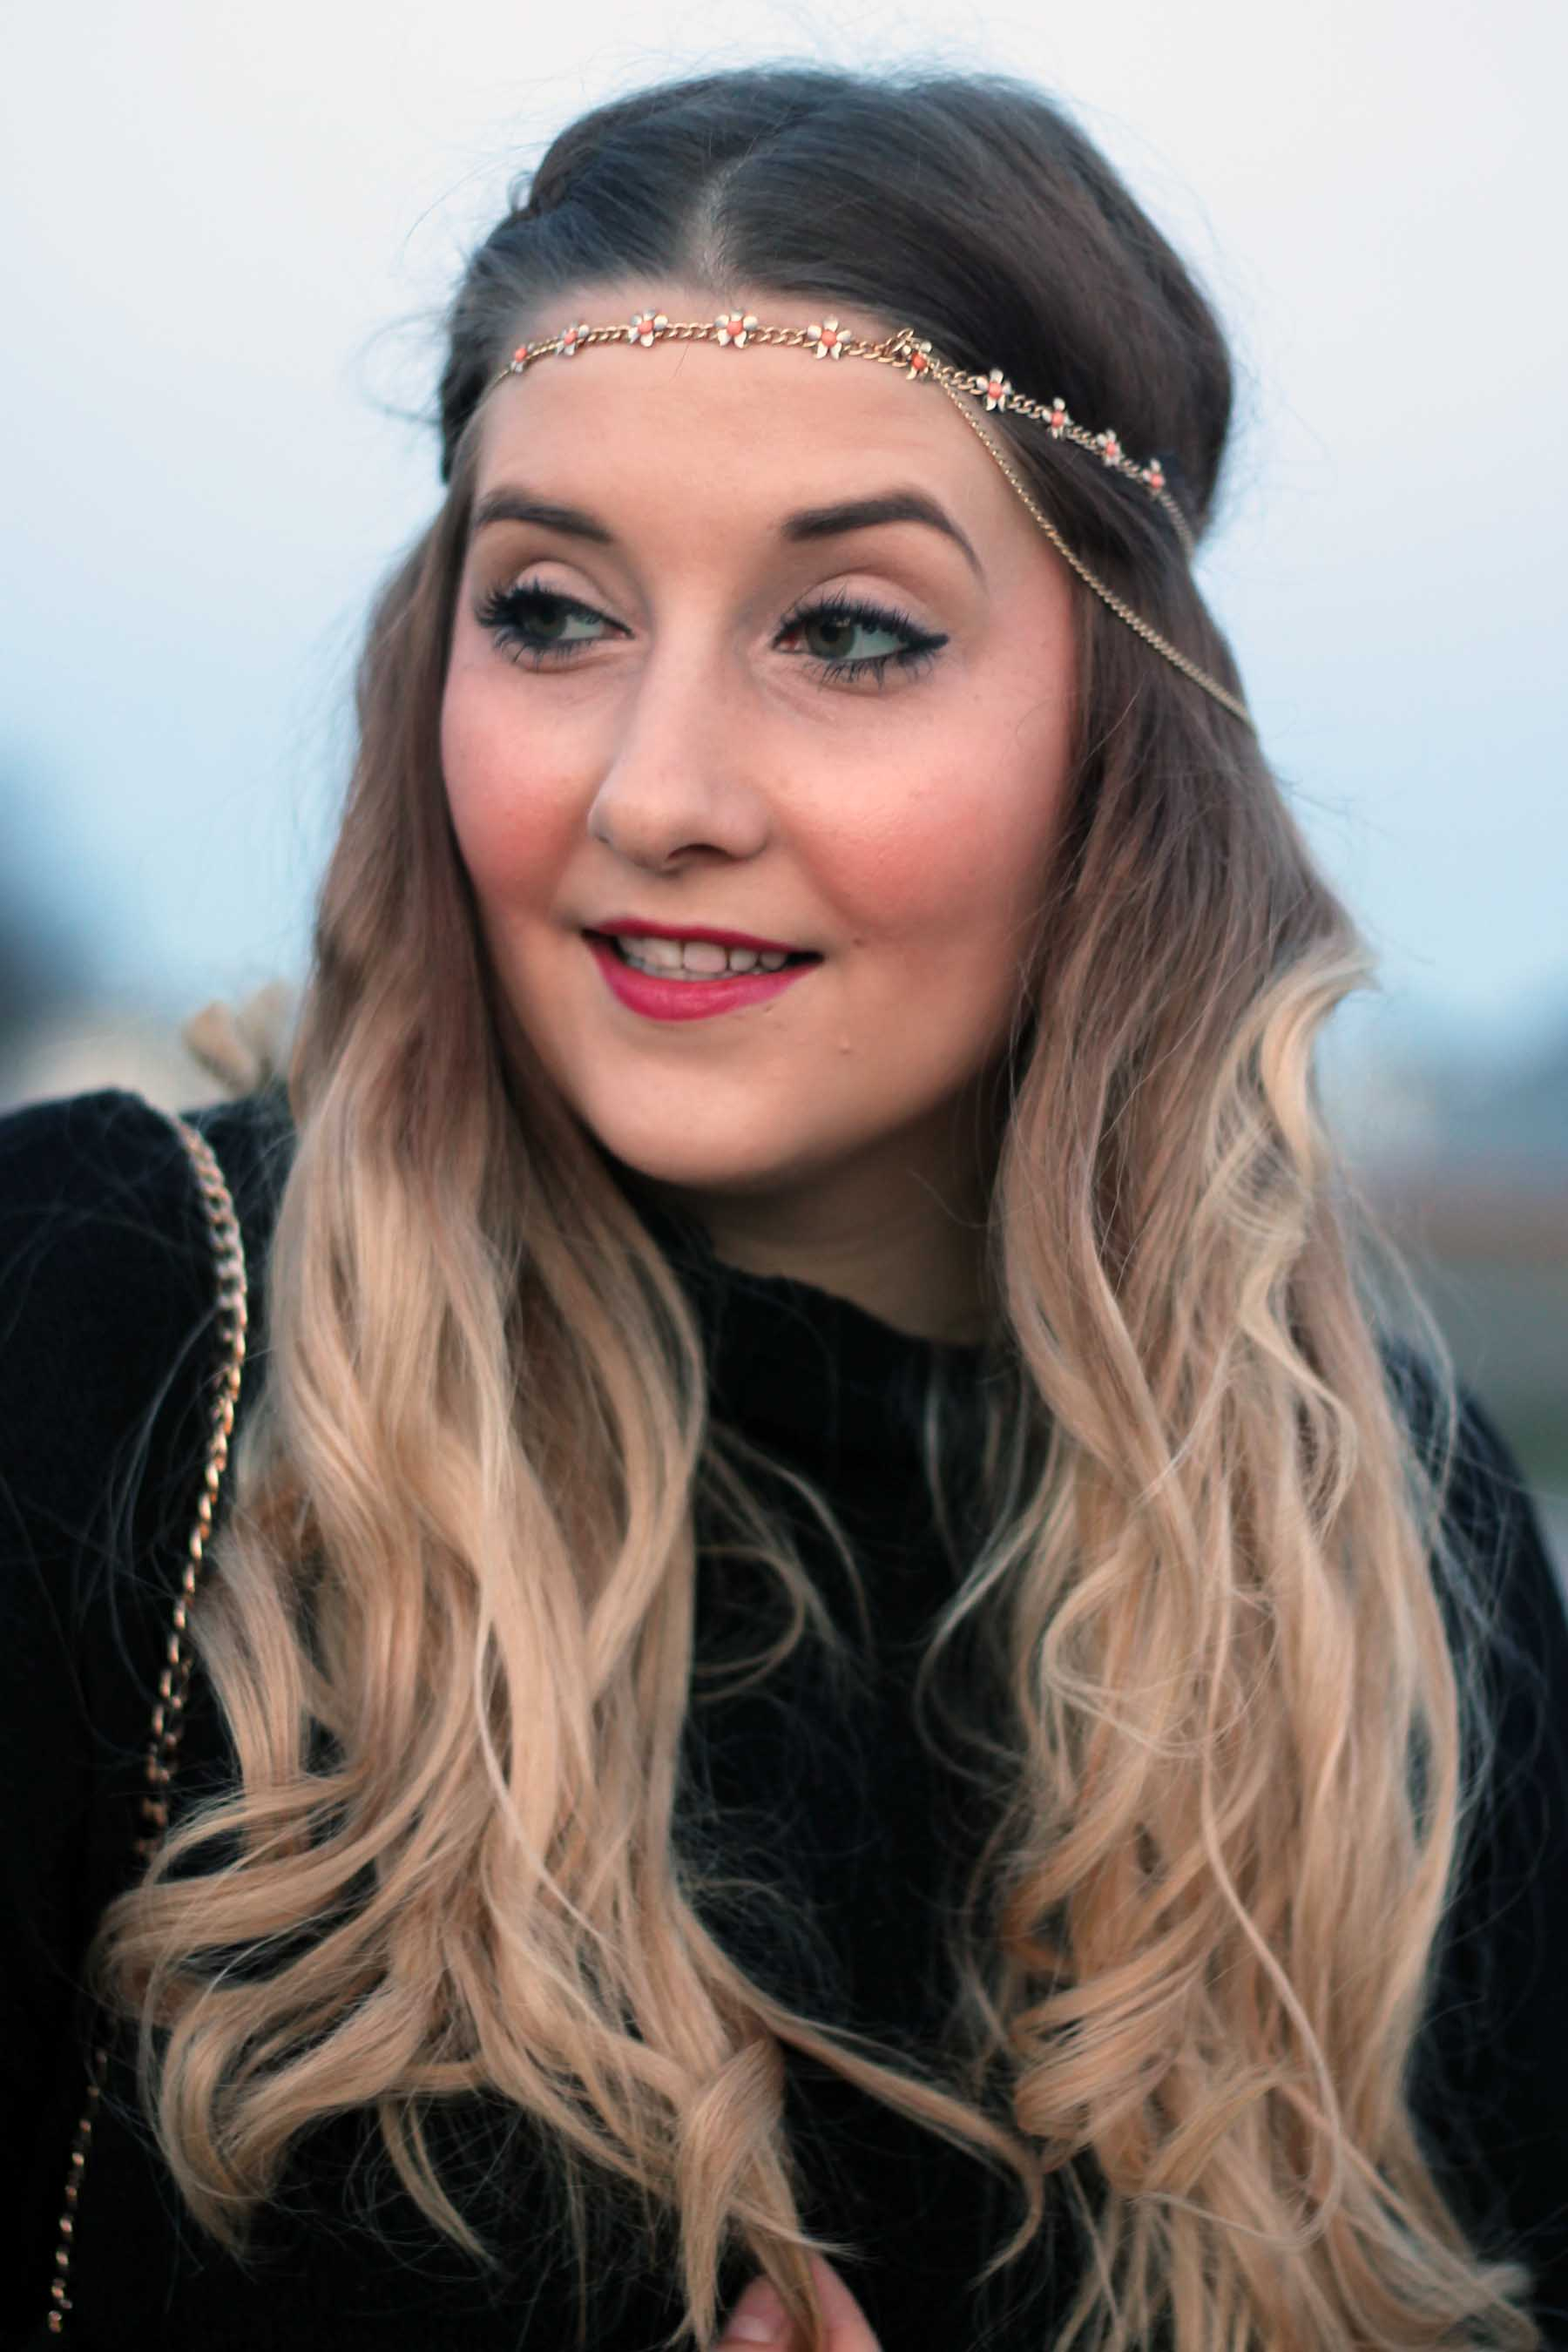 outfit-modeblogger-fashionblogger-haare-ombre-locken